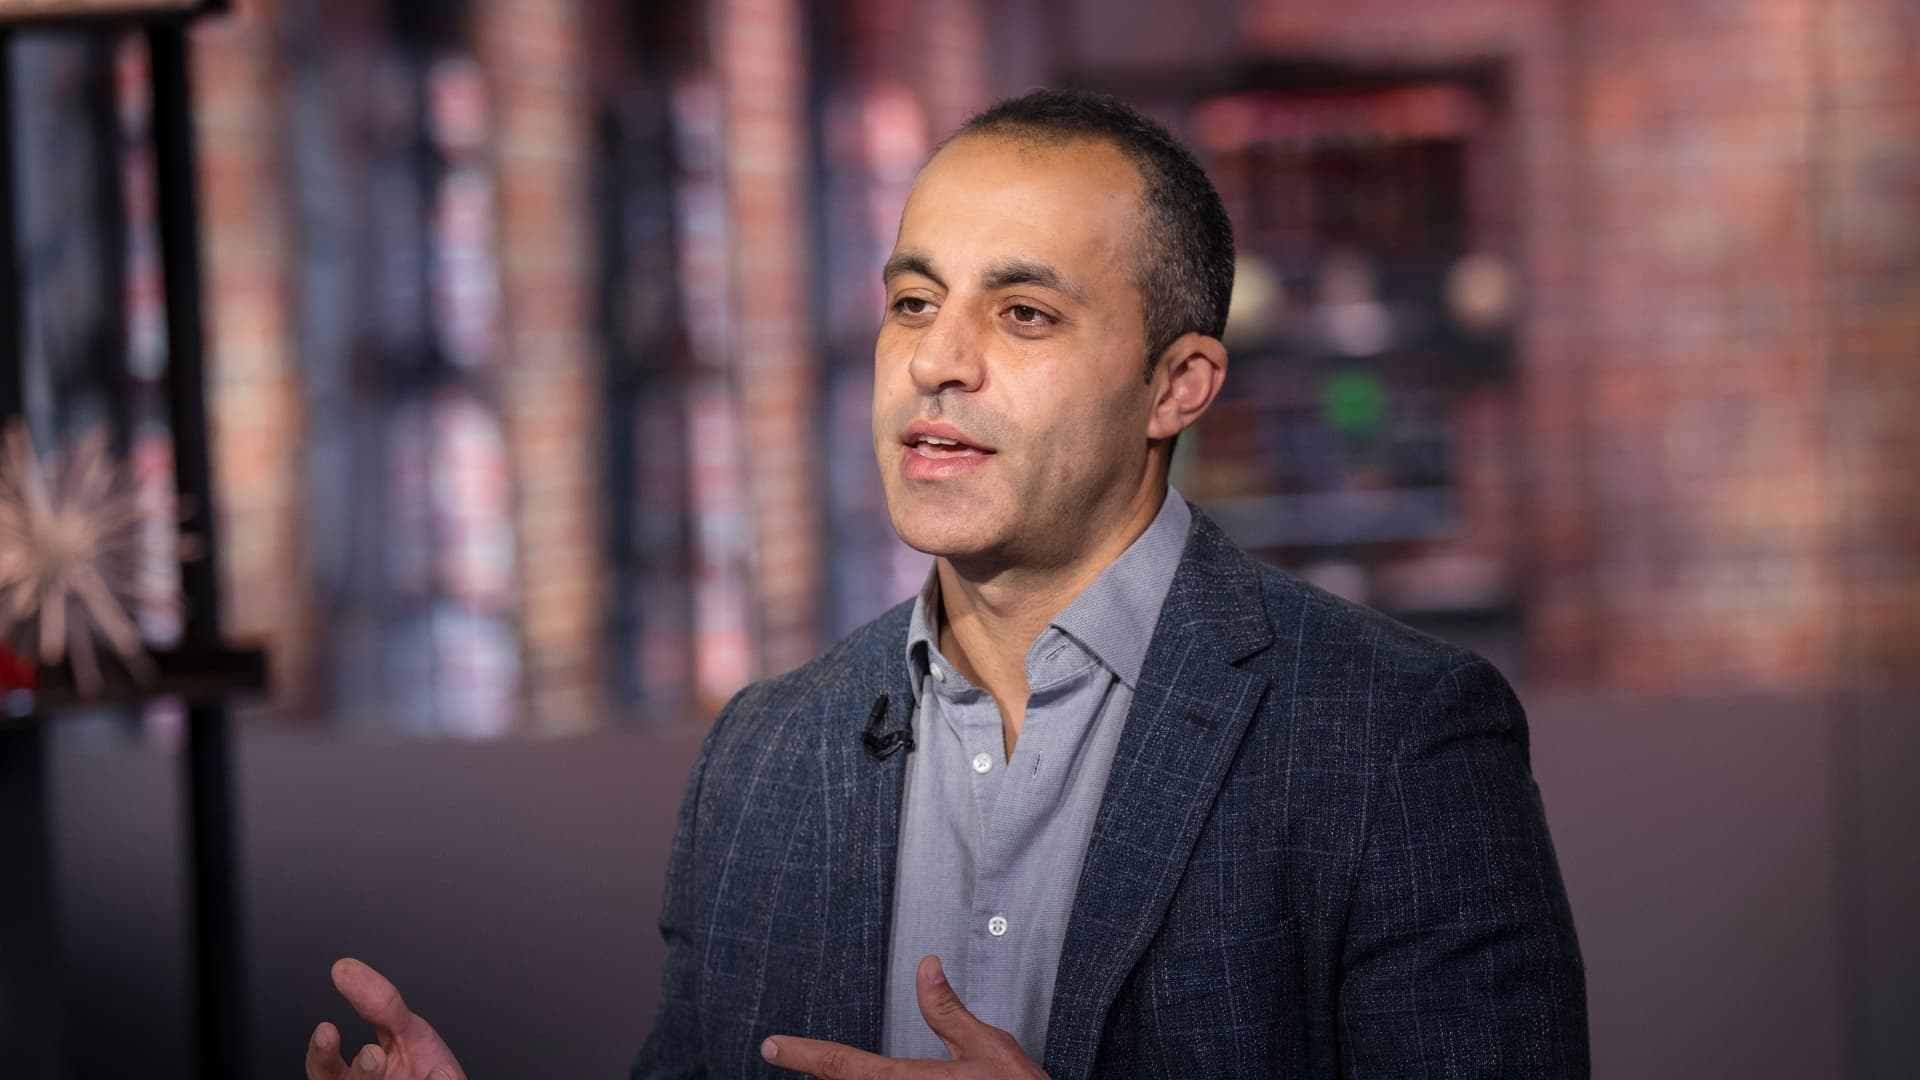 Ali Ghodsi, co-founder and chief executive officer of Databricks Inc., speaks during a Bloomberg Technology television interview in San Francisco, California, U.S., on Tuesday, Oct. 22, 2019.